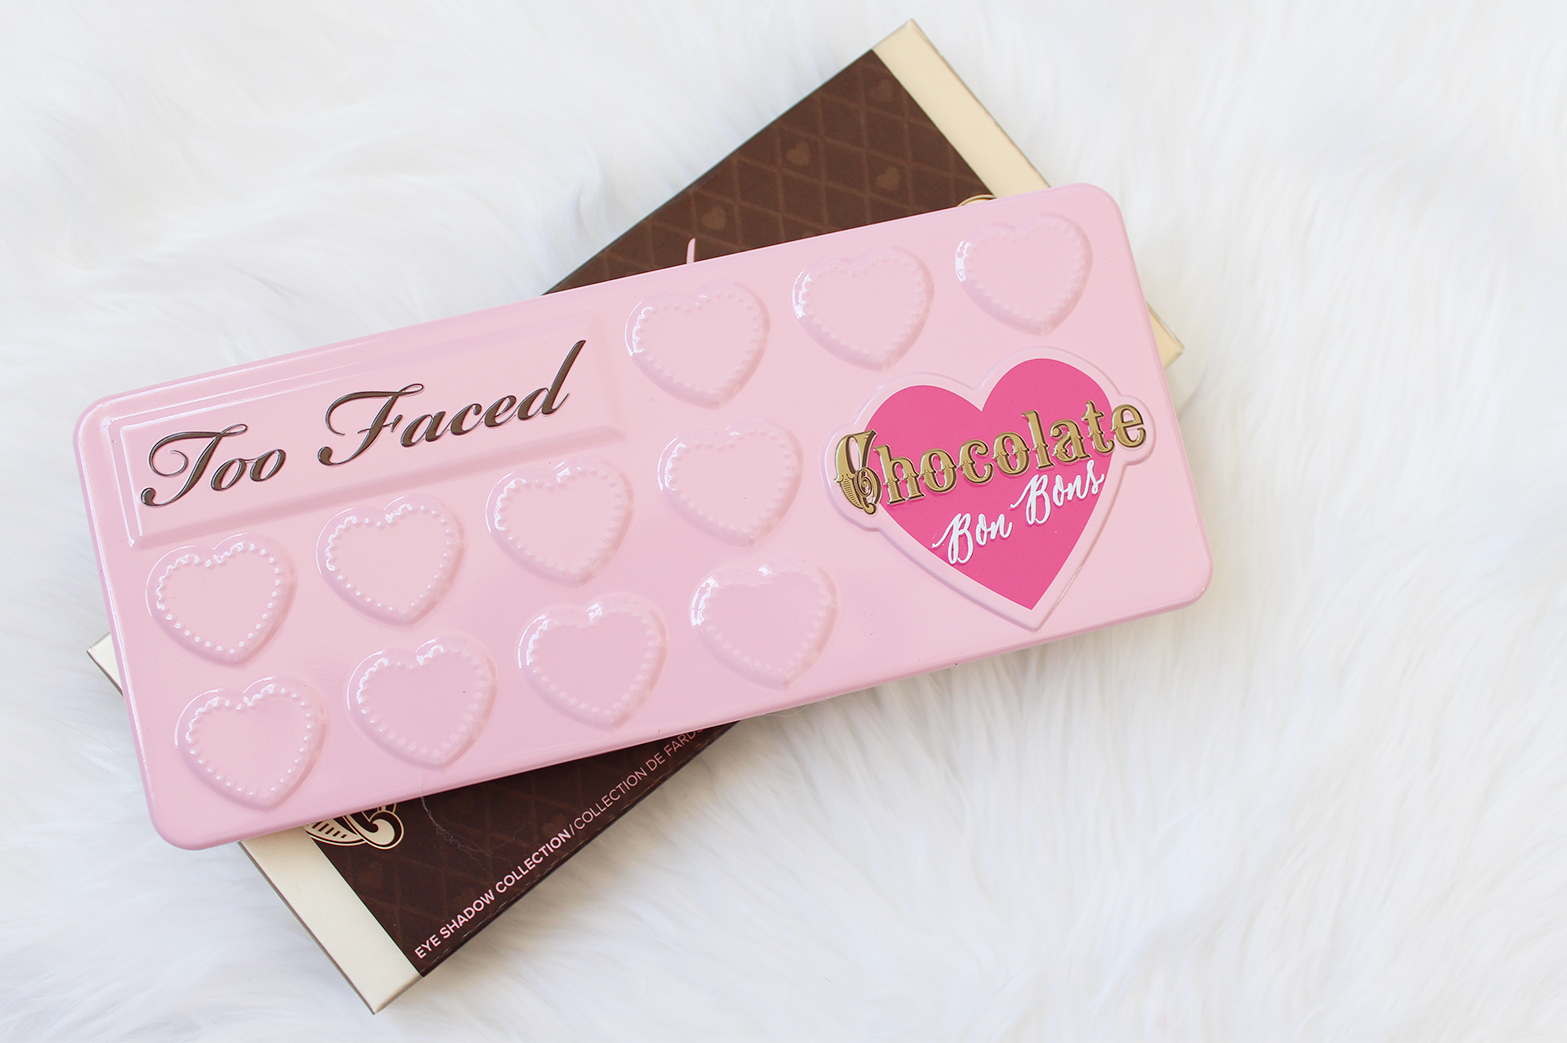 TOO FACED | Chocolate Bon Bons Eyeshadow Collection - Review + Swatches - CassandraMyee